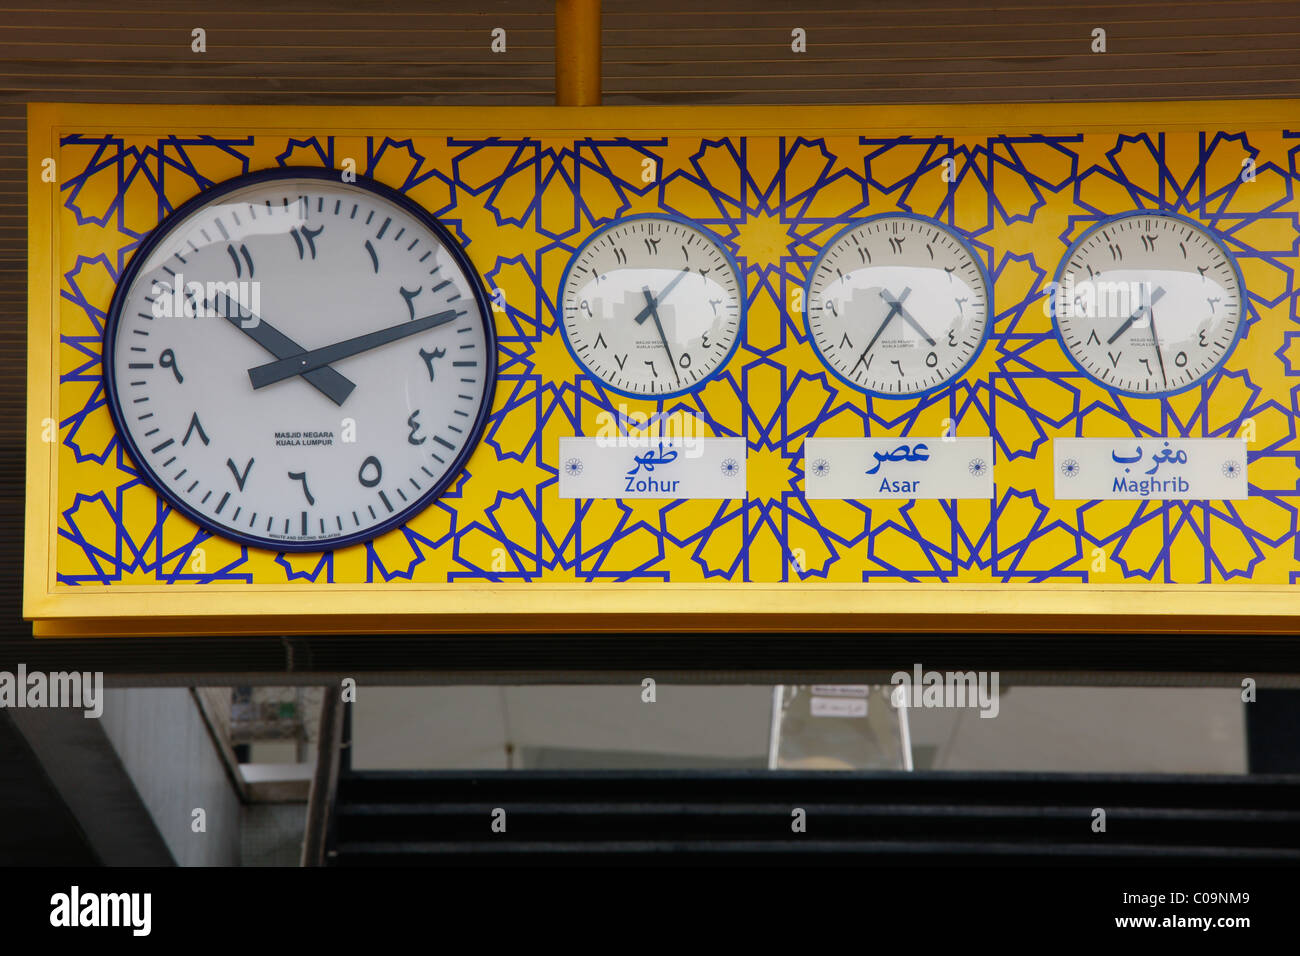 Islamic Prayer Clock Stock Photos Amp Islamic Prayer Clock